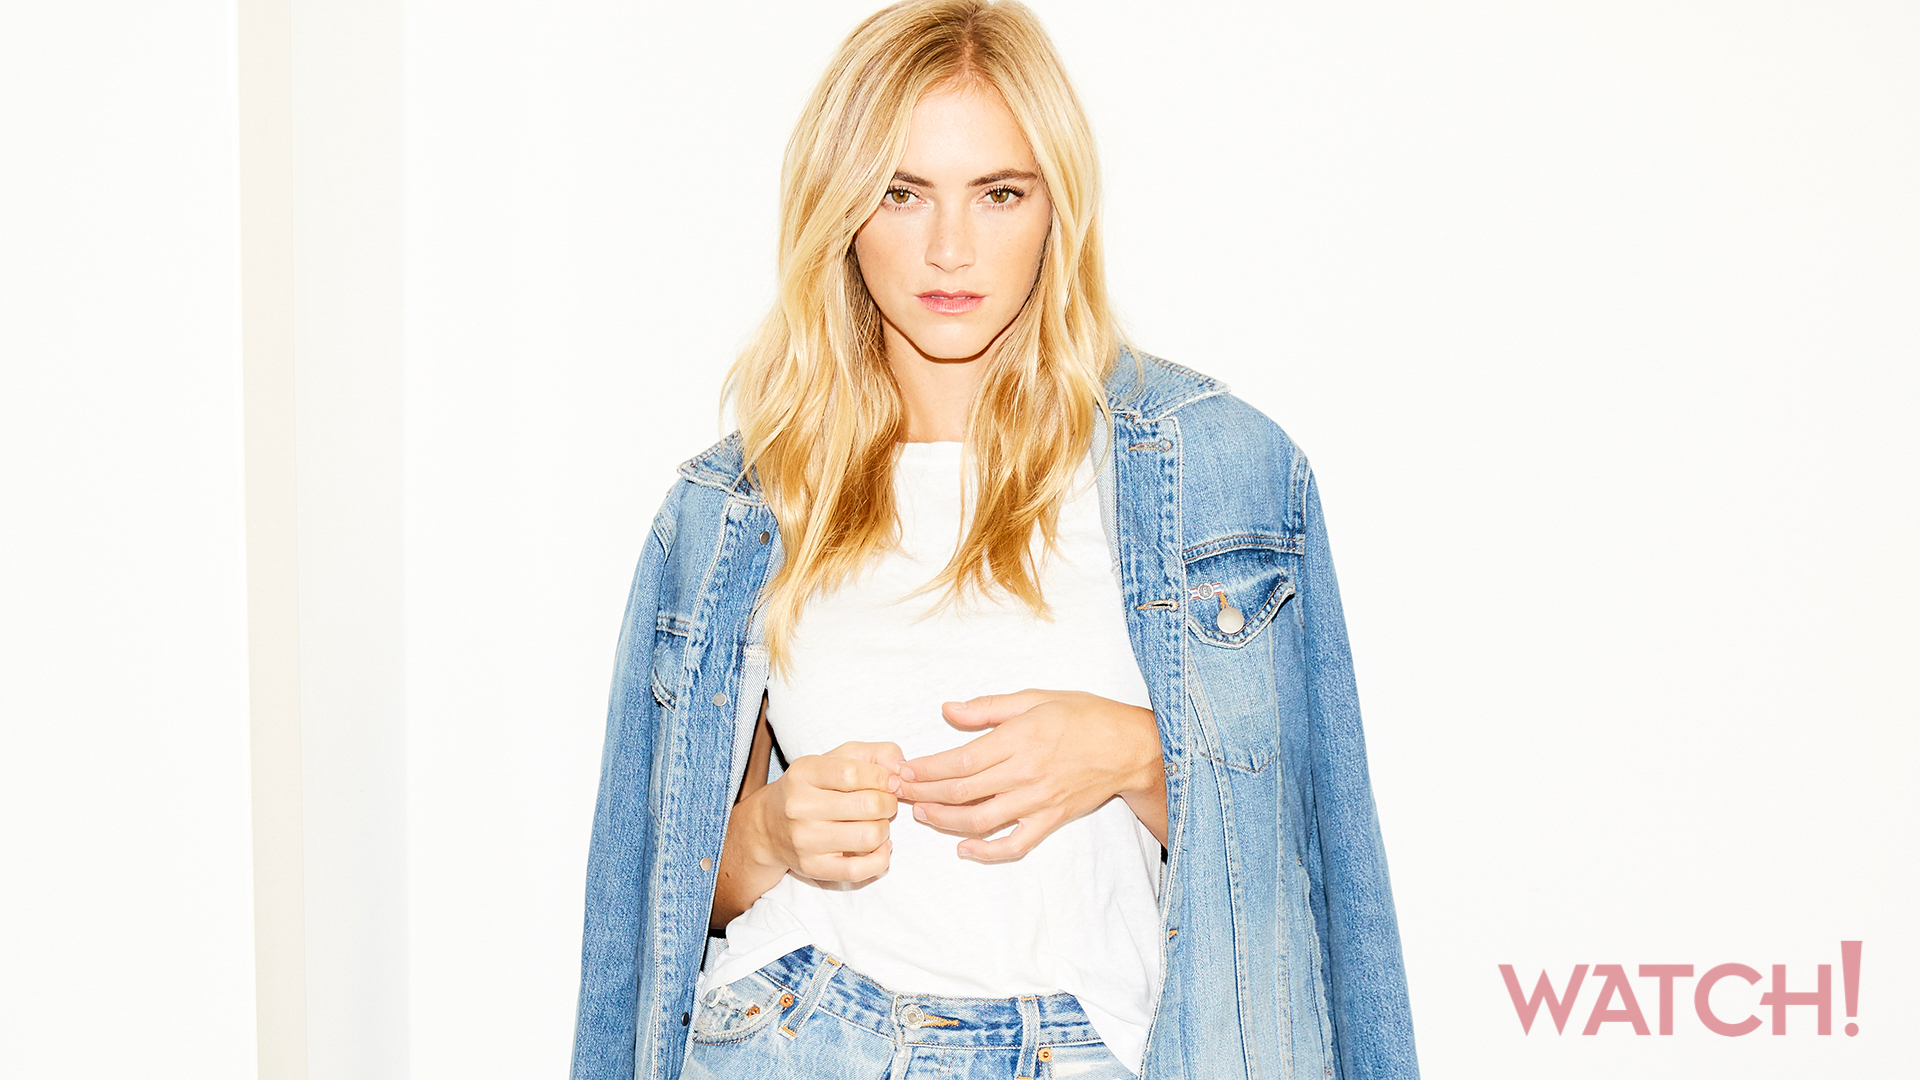 The camera loves Emily Wickersham almost as much as we do